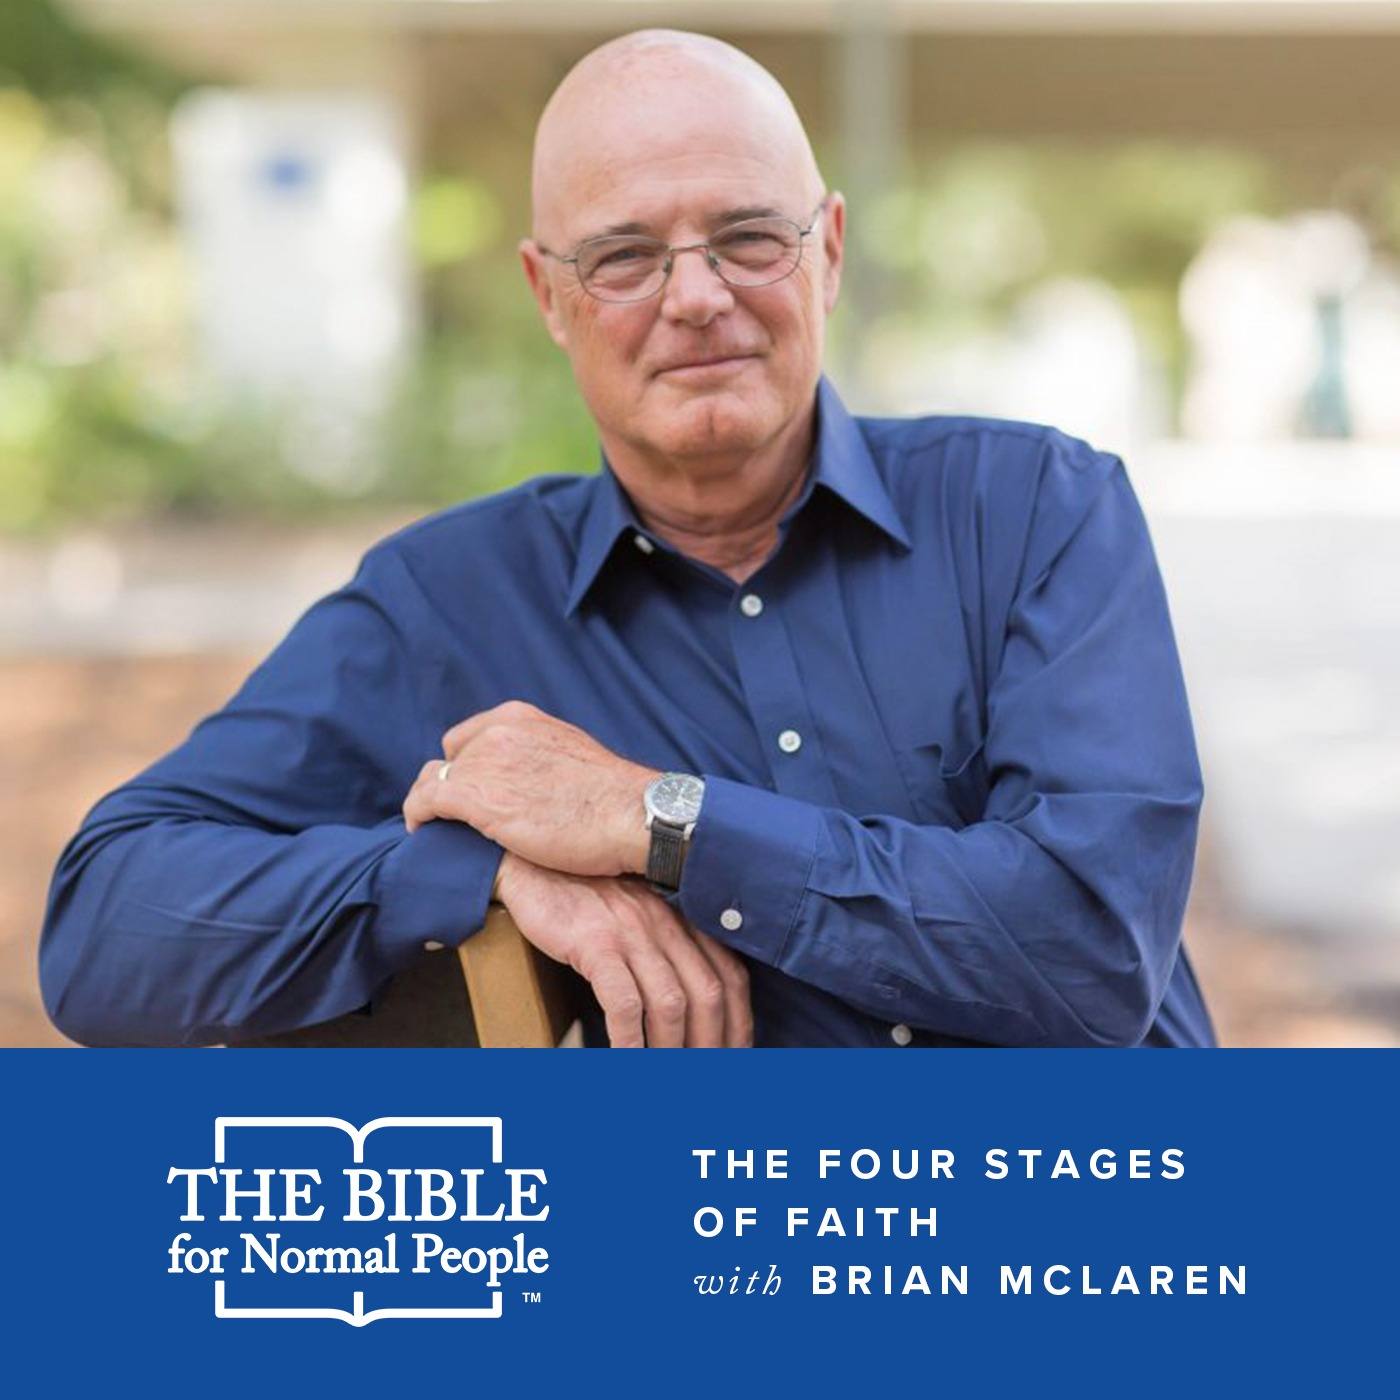 Episode 174: Brian McLaren - The Four Stages of Faith